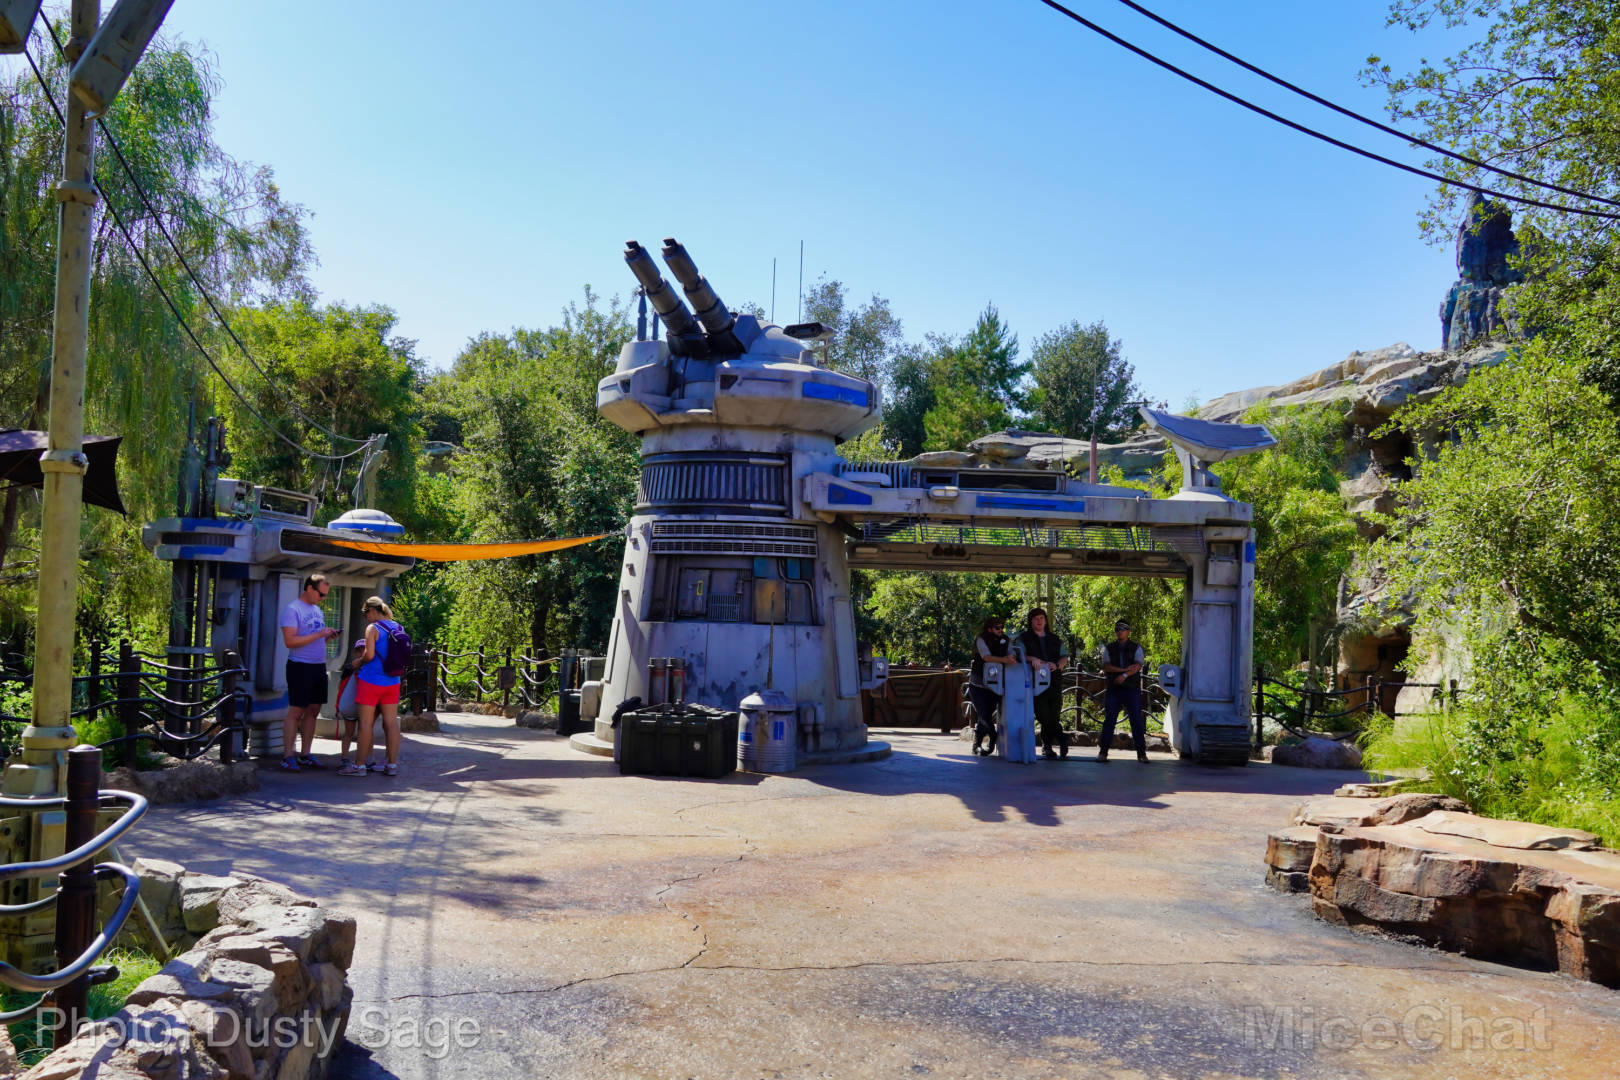 Disneyland Update - Some Things Hot and Some Things Not